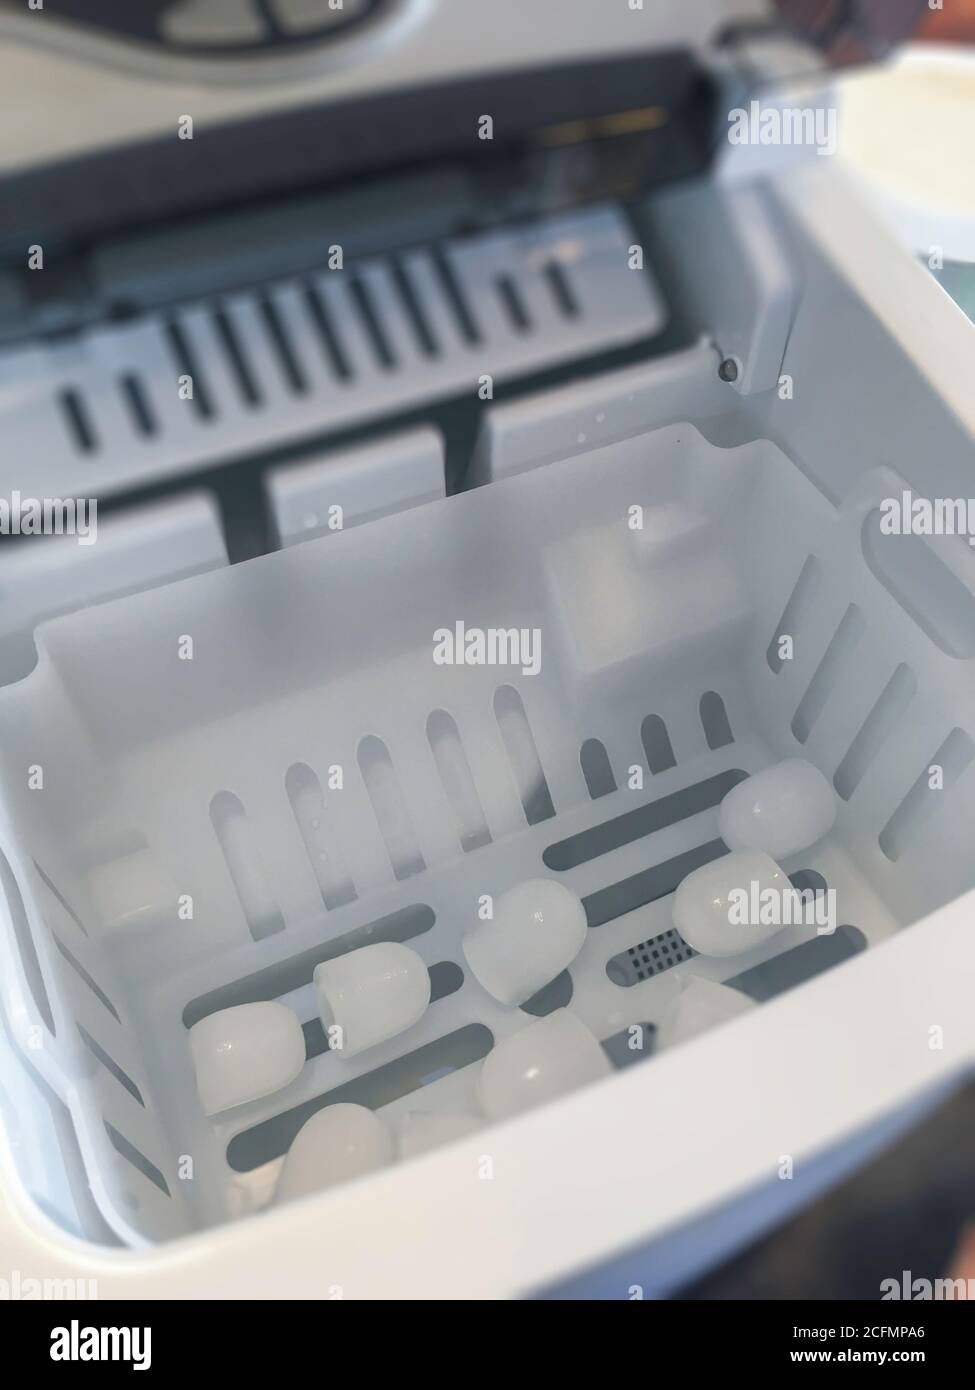 Clean Ice Cubes From Automatic Ice Maker Stock Photo Stock Photo Alamy